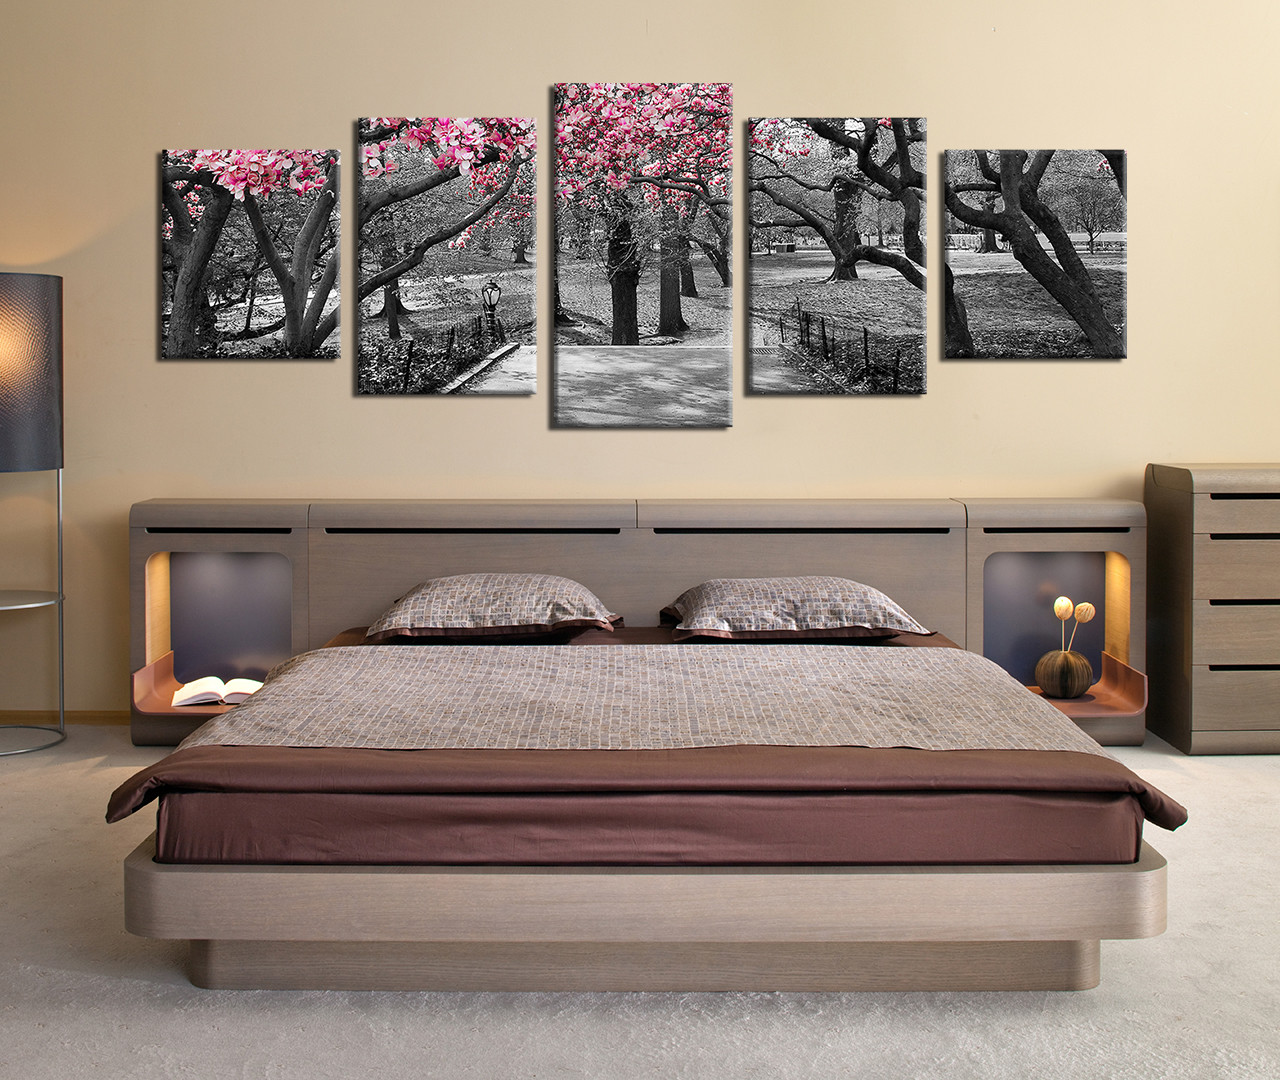 Black And White Artwork For Bedroom 5 Piece Multi Panel Canvas Grey Huge Pictures Autumn Trees Wall Decor Panoramic Scenery Canvas Wall Art Forest Photo Canvas Nature Artwork